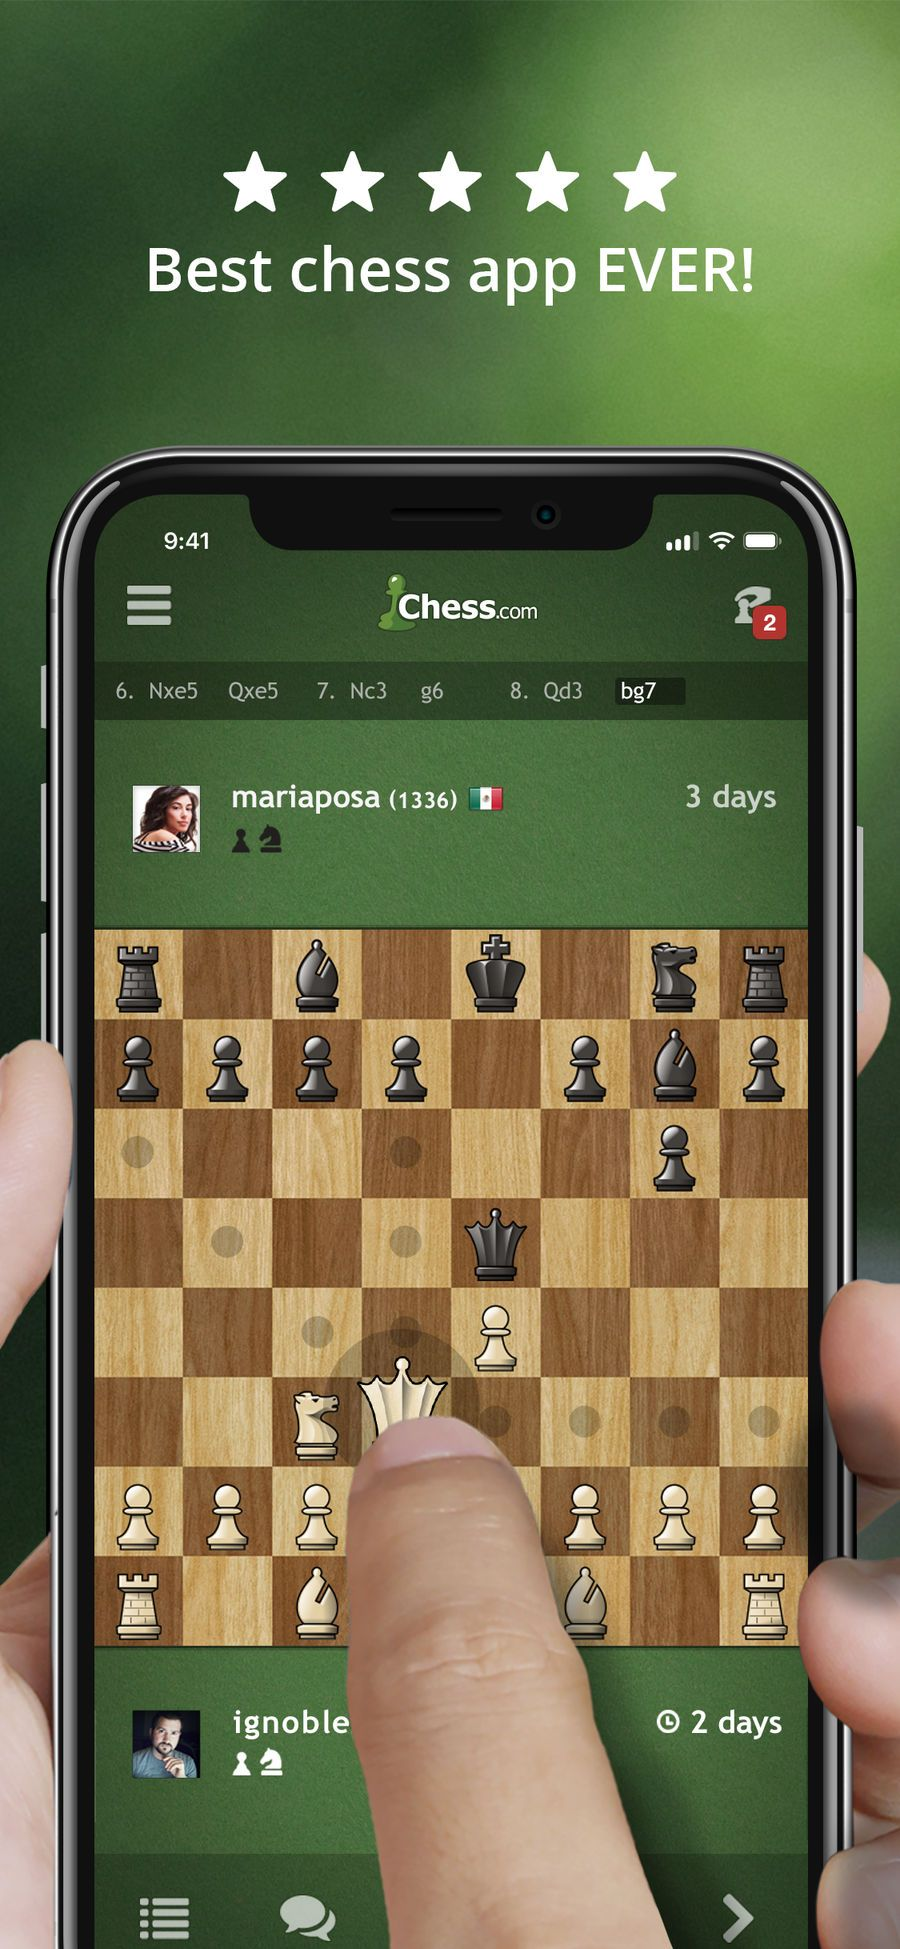 Pin by HumbleBumble Chess on chess software apps in 2020